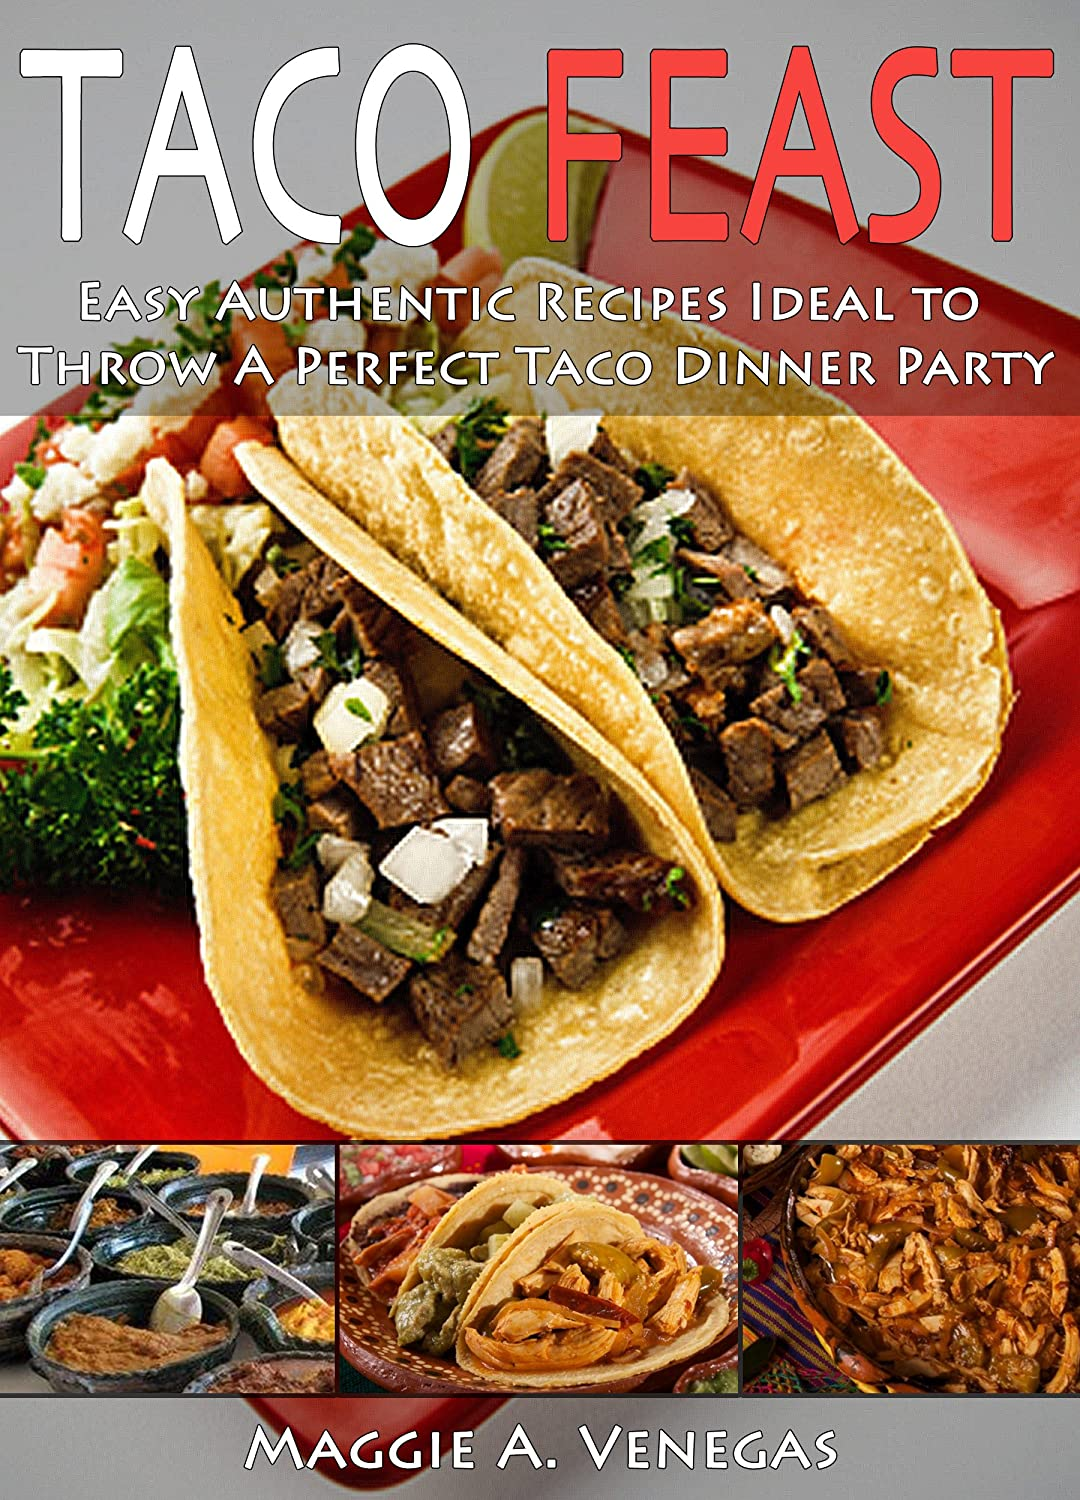 Taco Feast: Easy Authentic Recipes Ideal to Throw A Perfect Taco Dinner Party (English Edition)